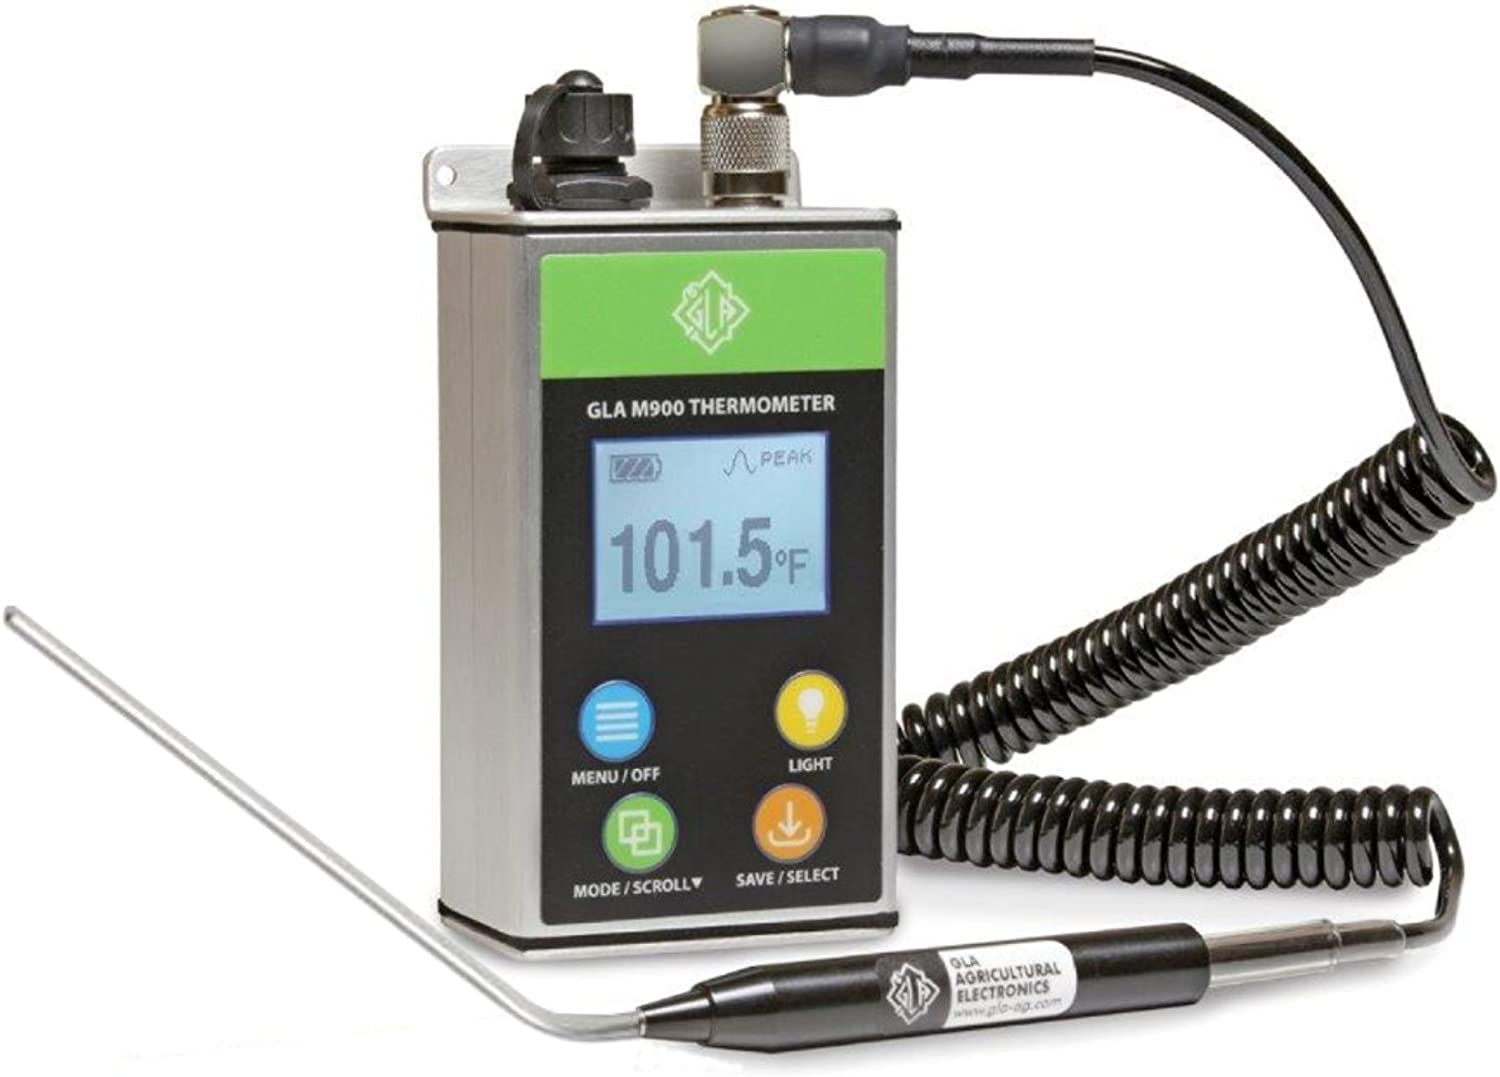 GLA M900 Veterinary Cattle Rectal Thermometer. New Design! Smaller, Lighter. Fast, Accurate Temps in 8-15 Secs. Big, Back-Lit LCD. Rechargeable. Built for Dairies & Feedlots. (Angled, 4.0 Inch) : Health & Household